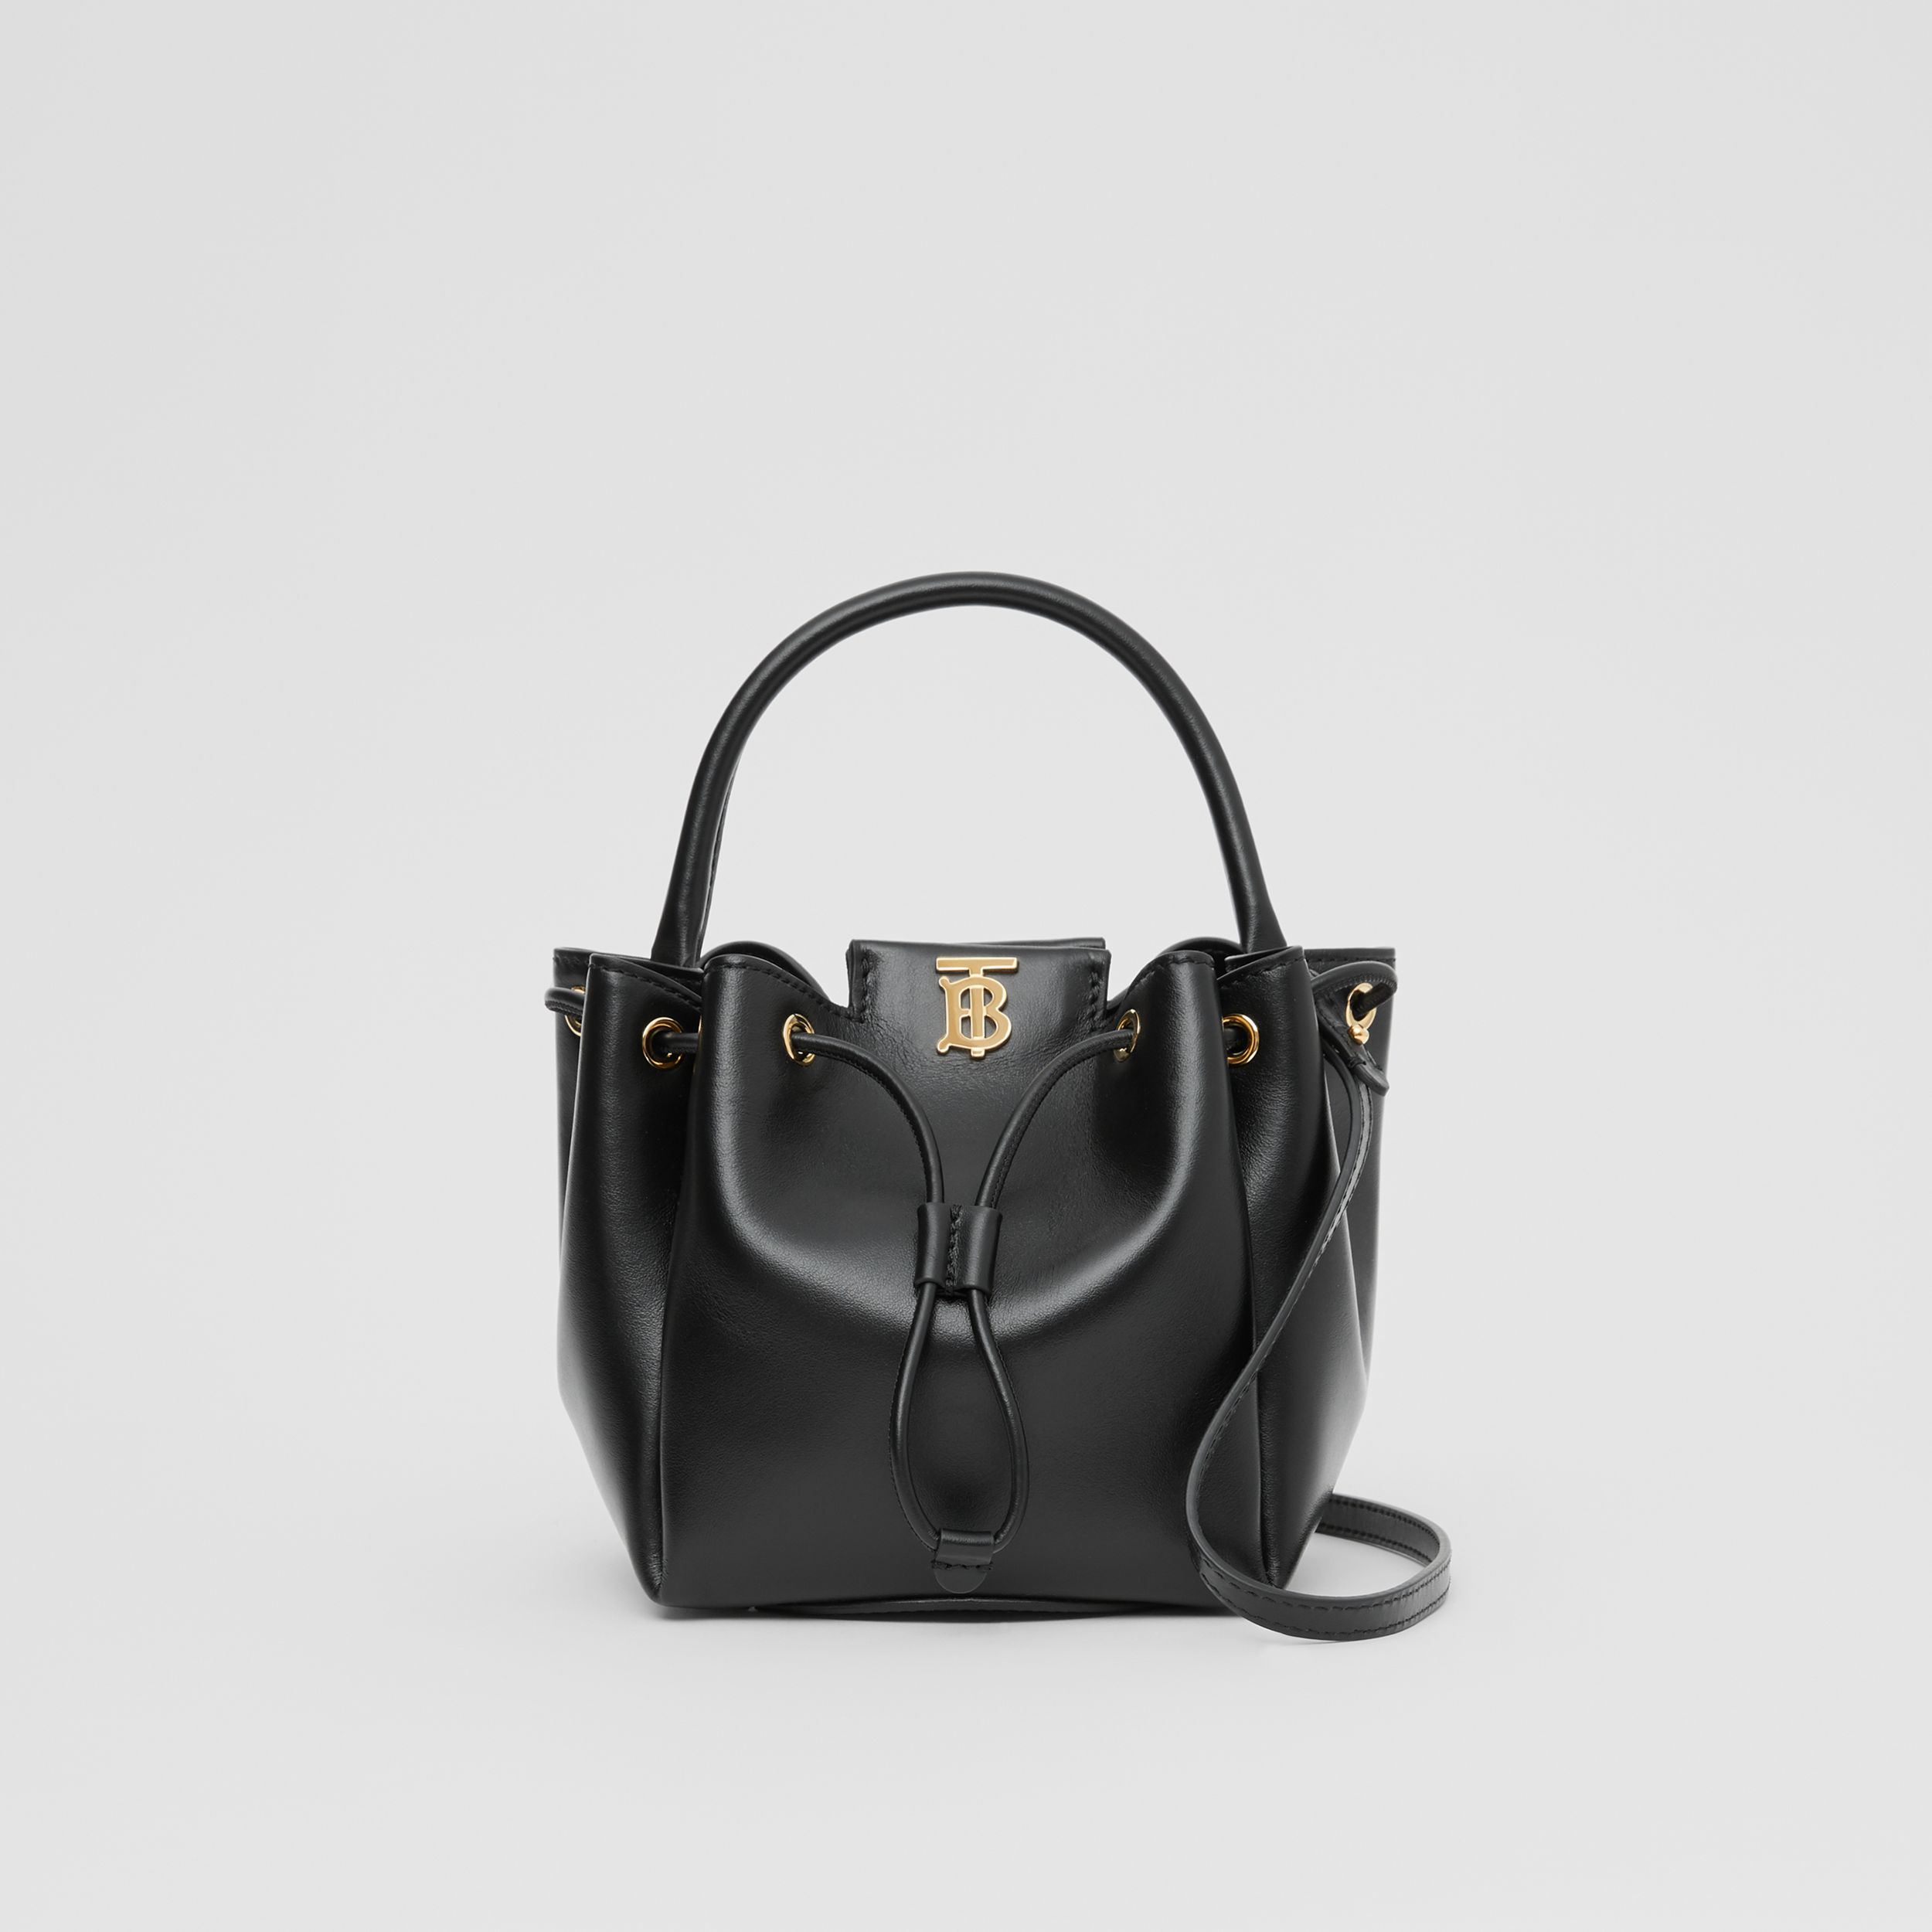 Monogram Motif Leather Bucket Bag in Black - Women | Burberry United Kingdom - 1